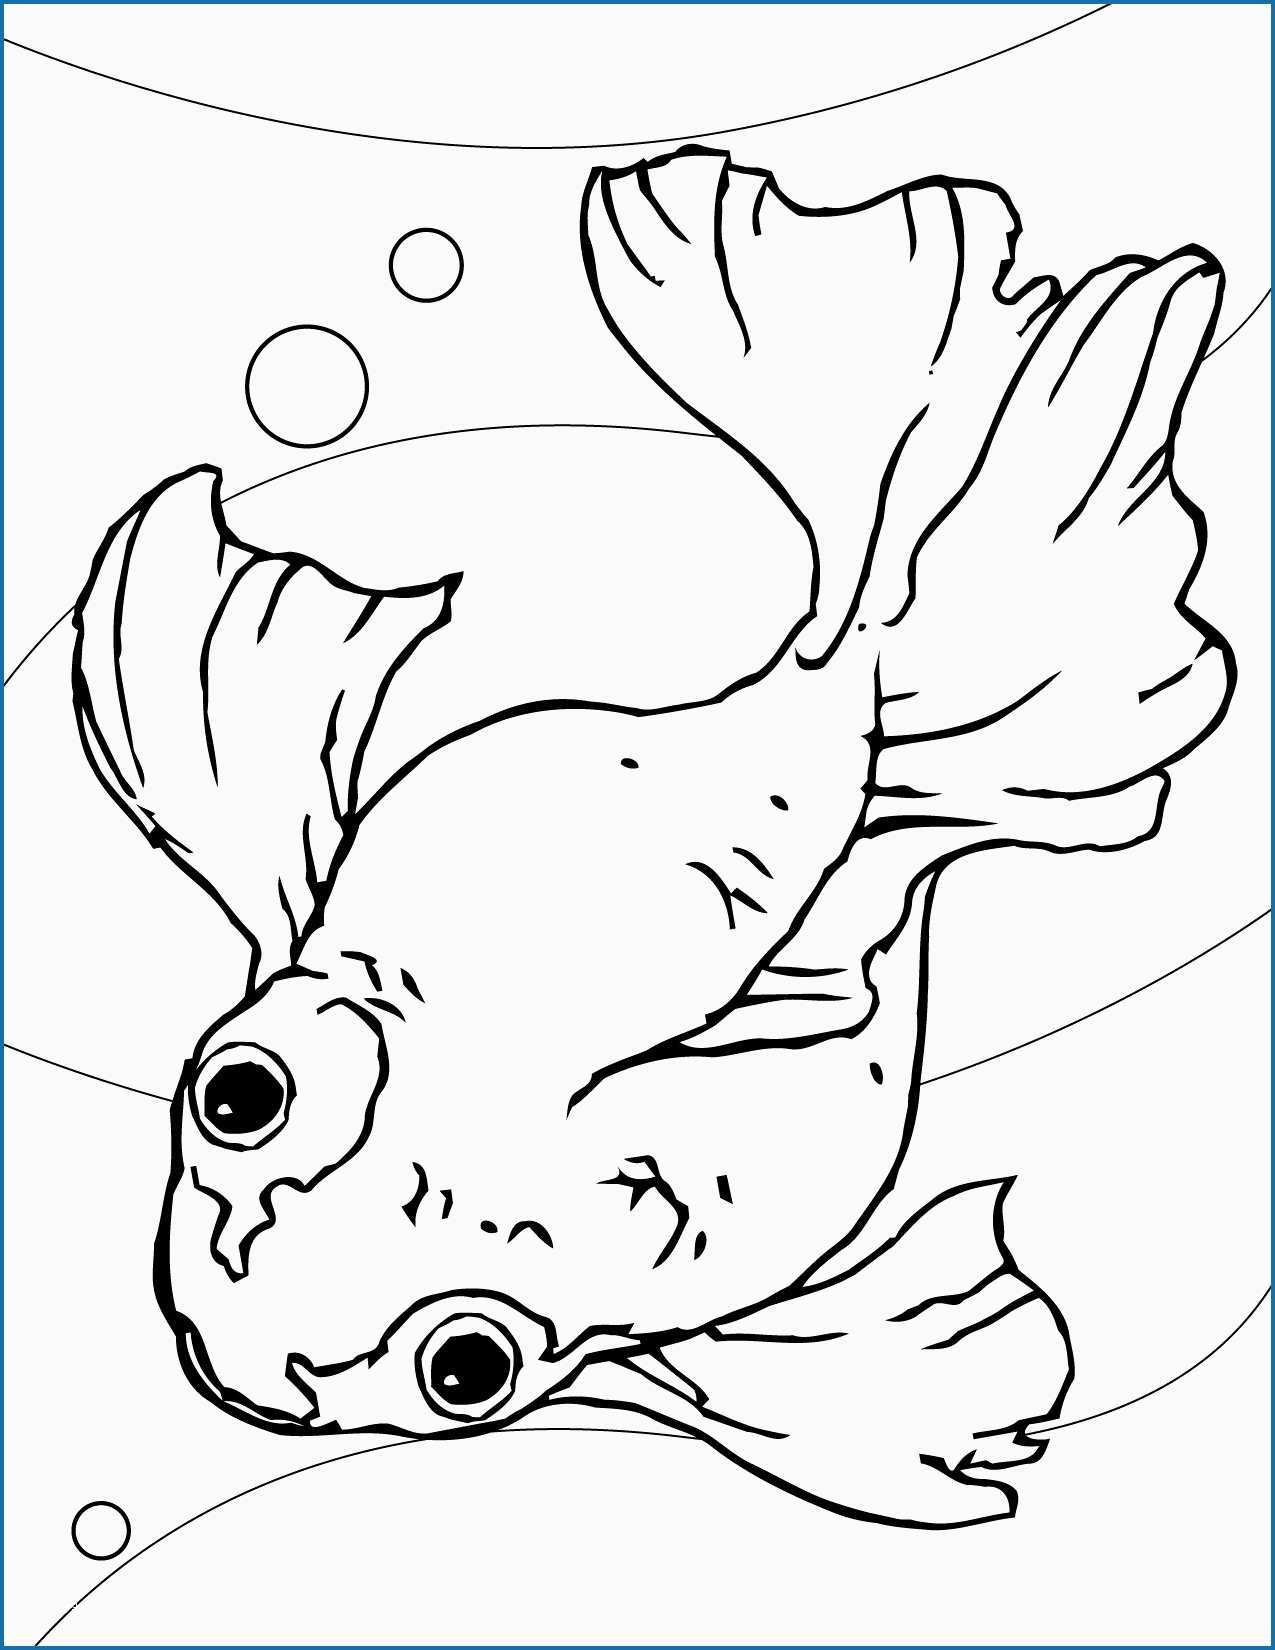 Goldfish Coloring Page Goldfish Coloring Page Lovely Free Printable Fish Coloring Pages For